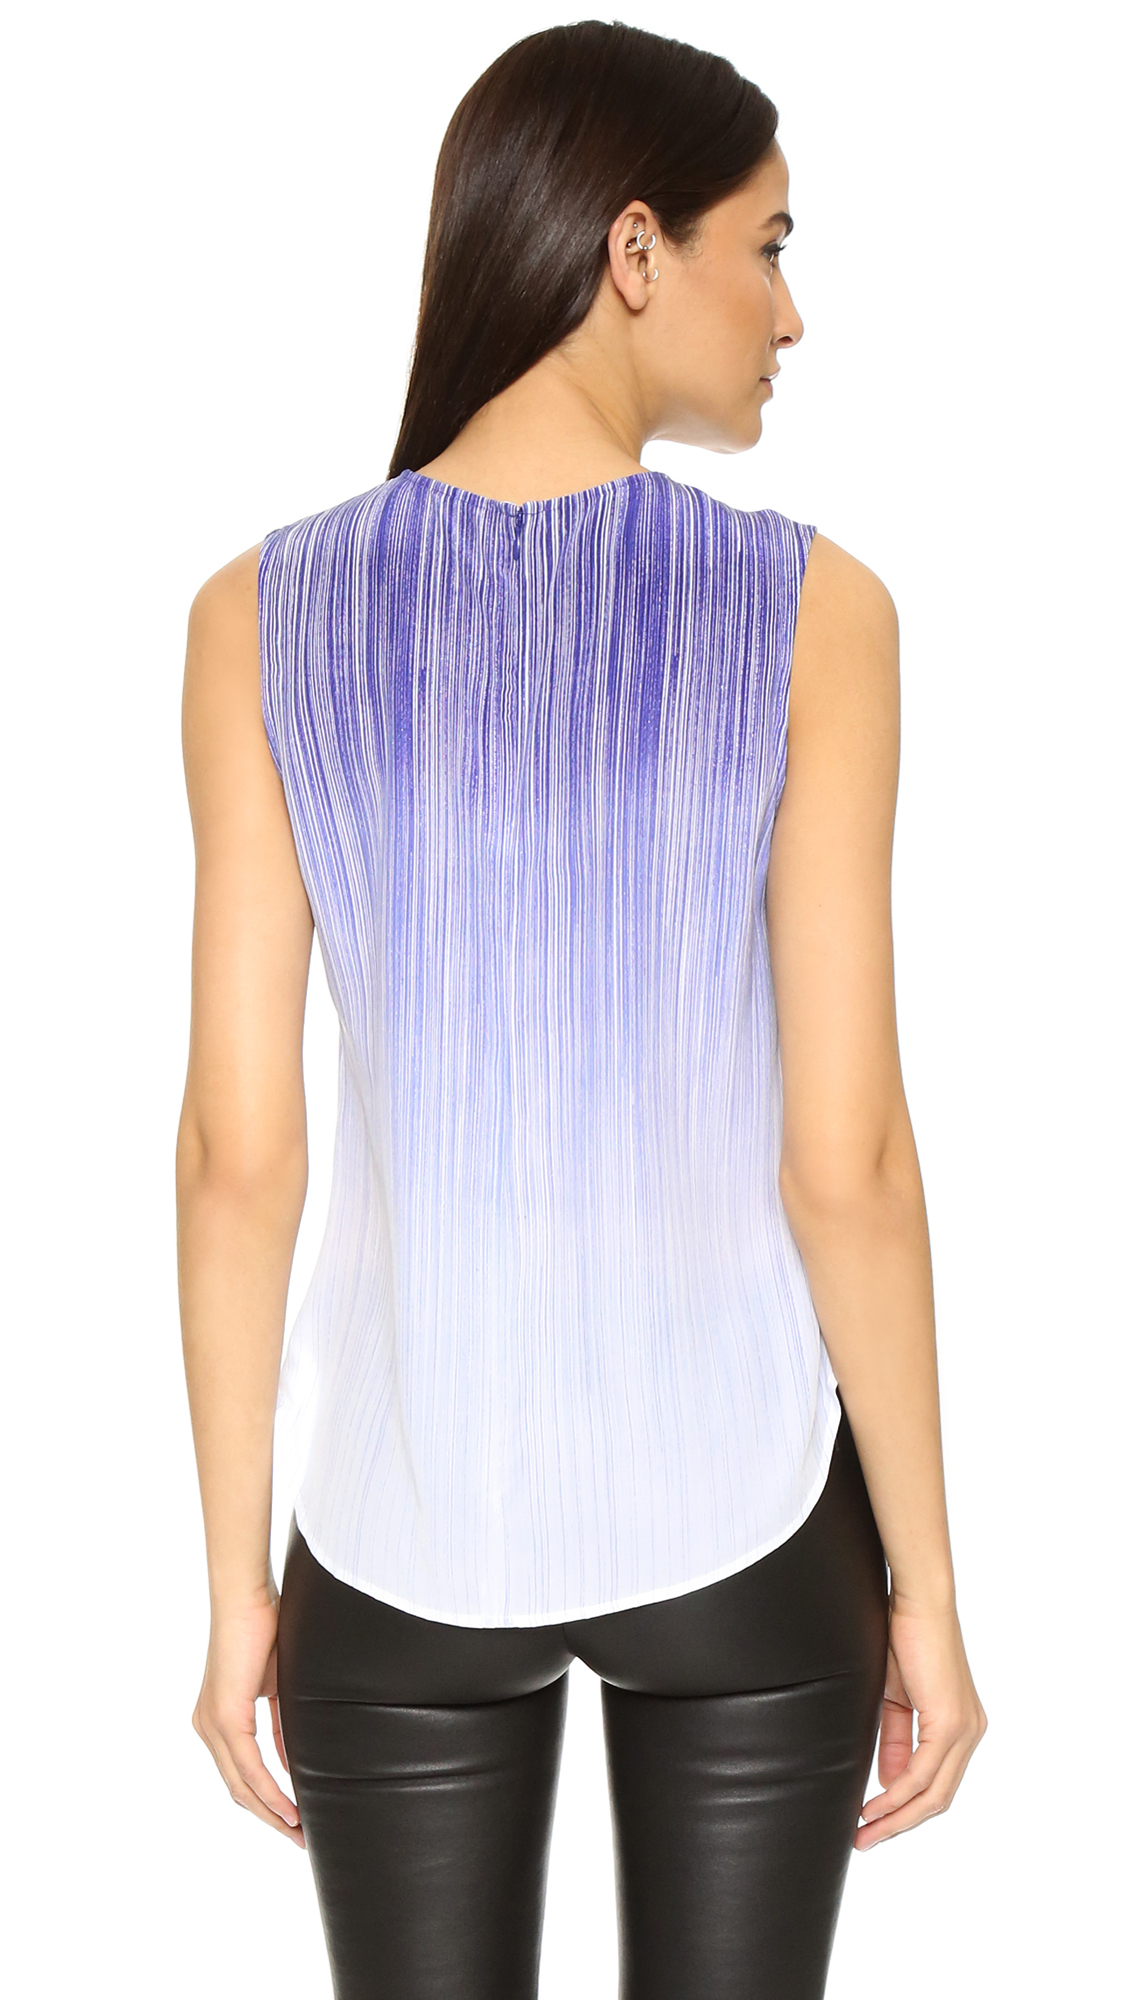 74cdd1854aa7cd Lyst - Equipment Lyle Top in Blue